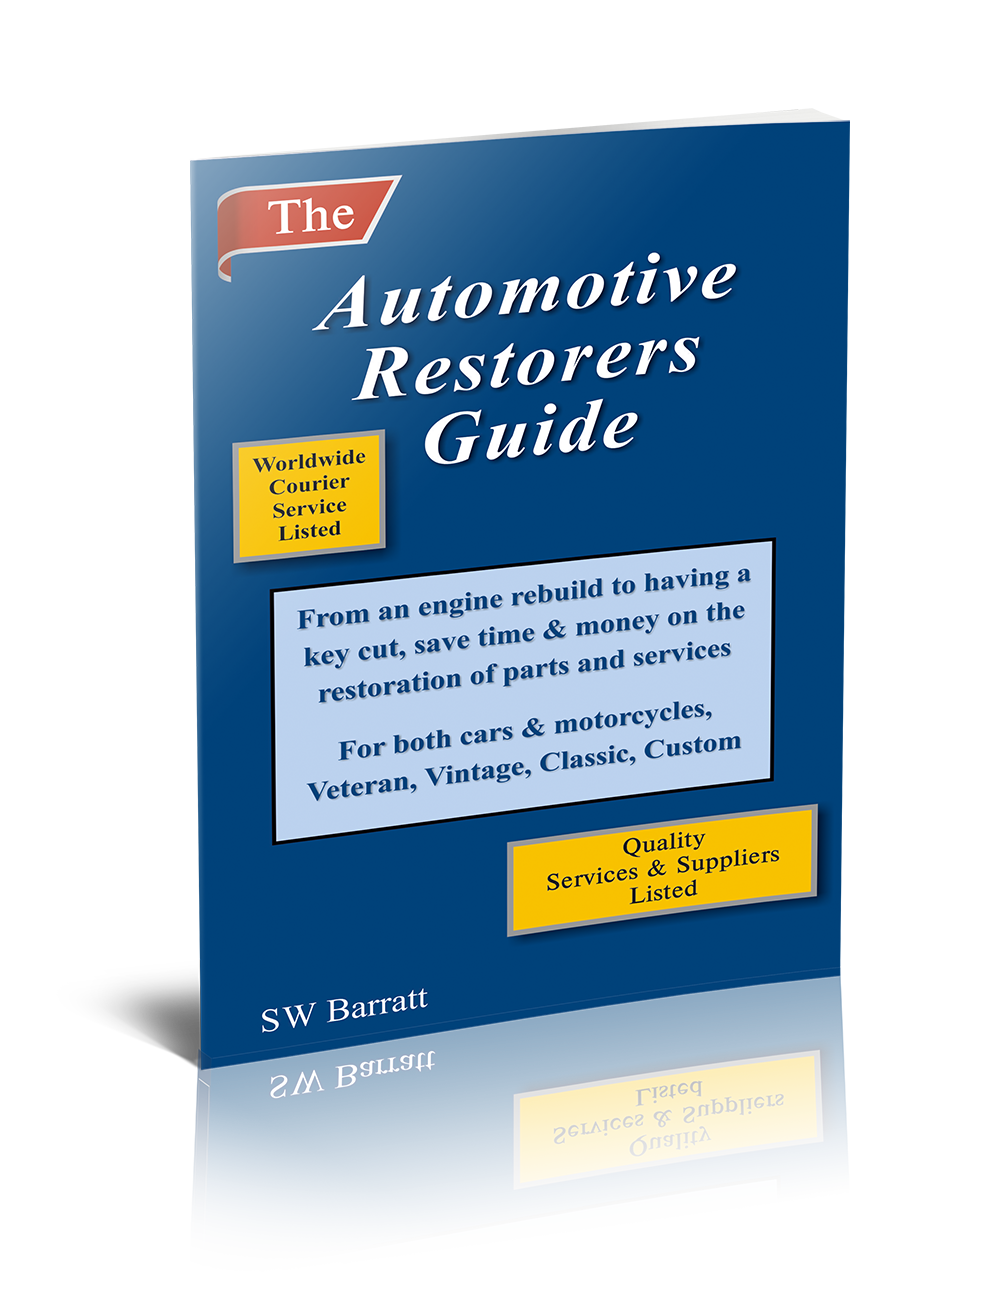 Automotive Restorers Guide Ebook Mock-up Image